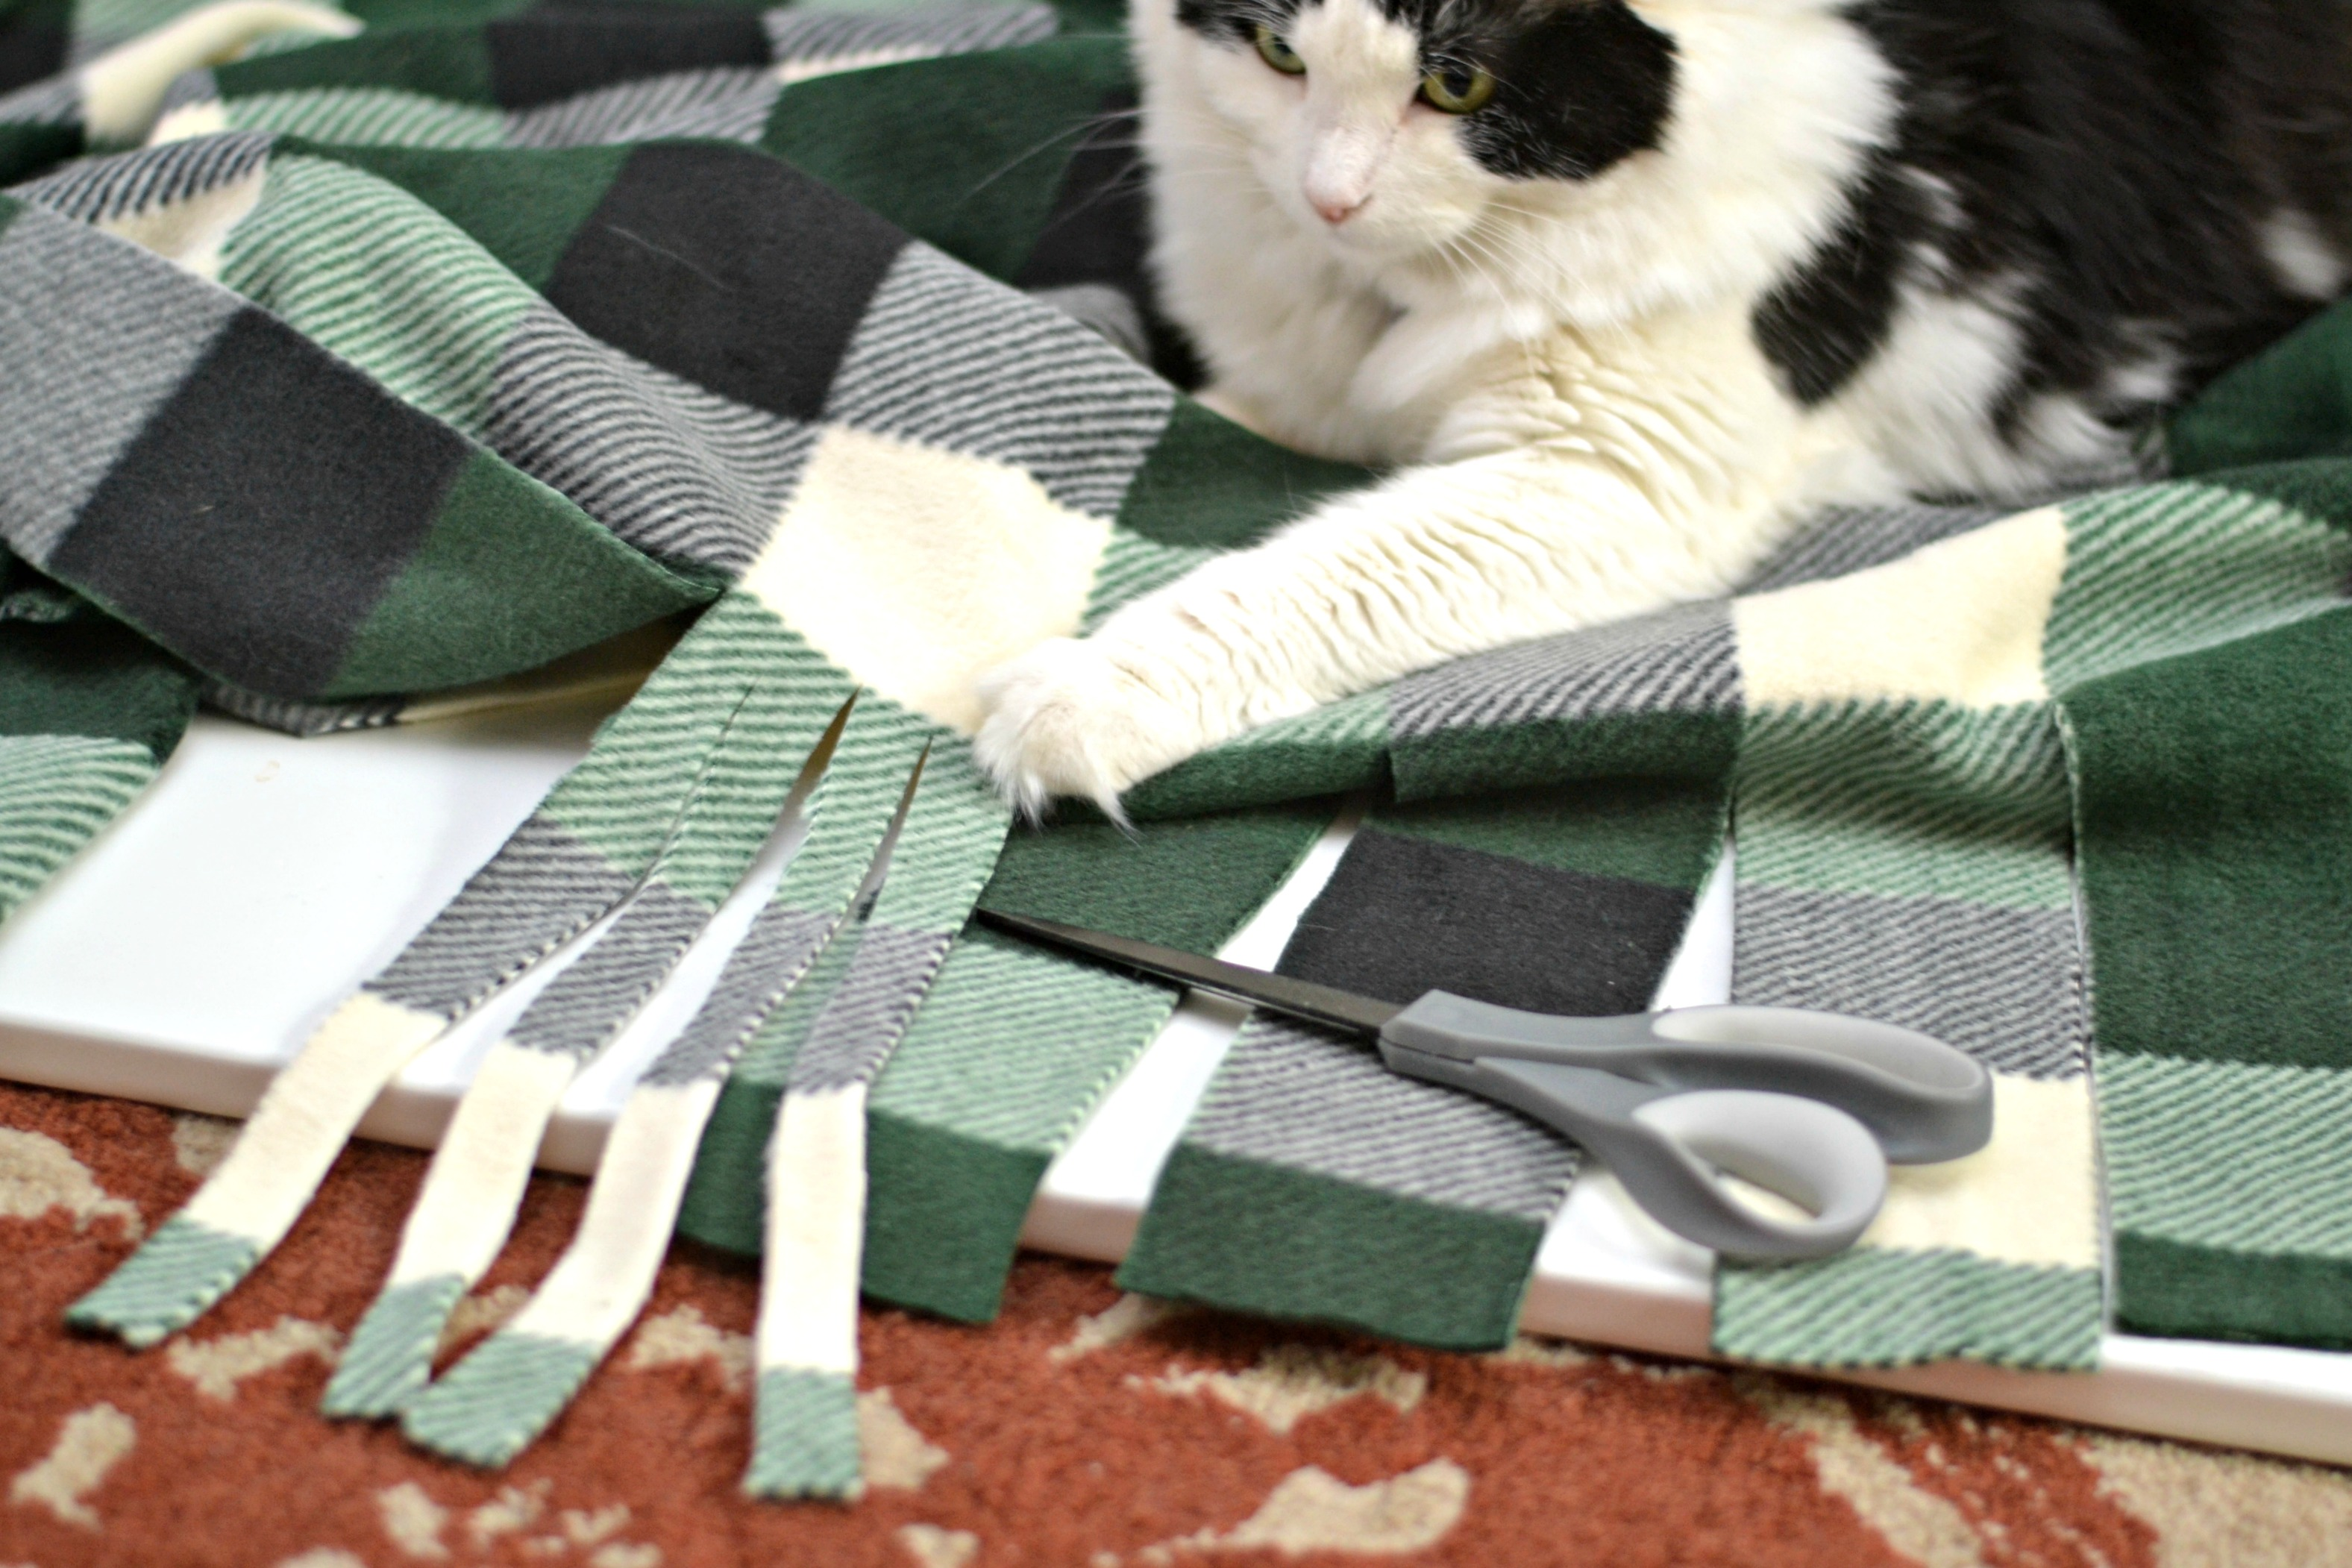 No sew blanket, no-sew blanket DIY, DIY no sew blanket, no sew fleece blanket, cozy fleece blanket, how to make your own cozy throw, how to make your own no-sew blanket, diy NO SEW throw blanket: how to make a gorgeous, cozy throw for less than $10!